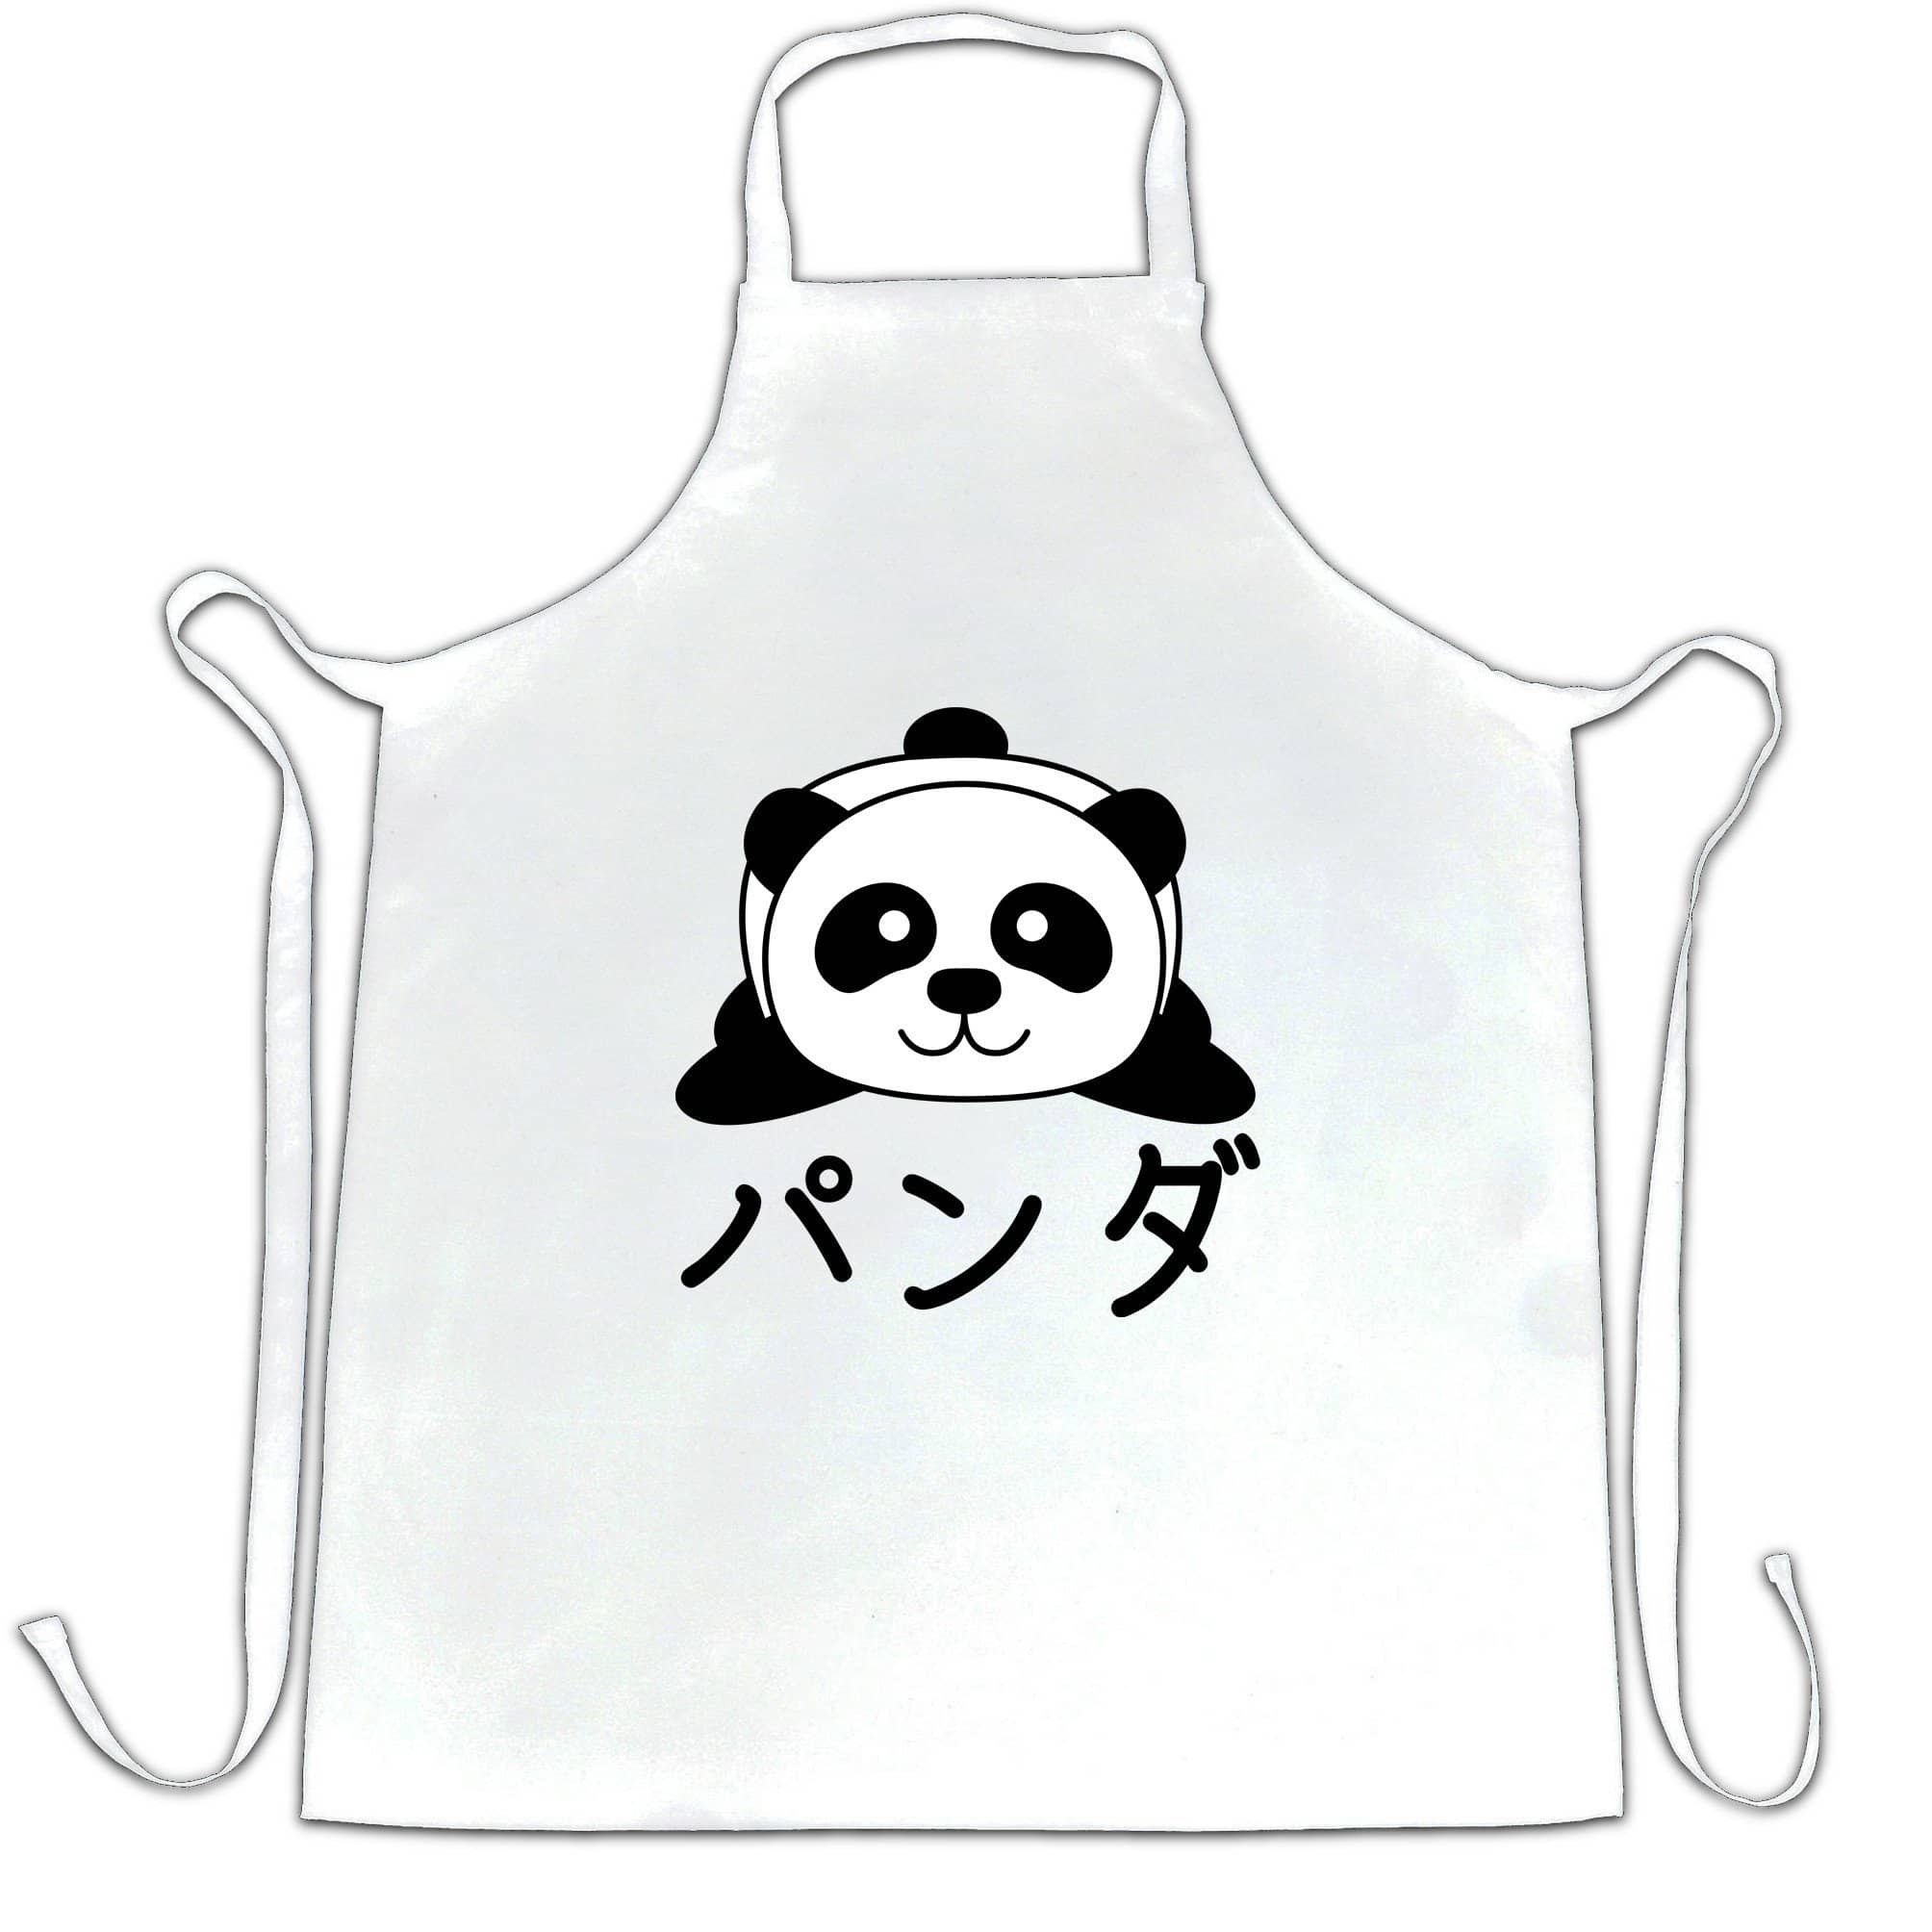 Cute Chef's Apron Japanese Baby Panda With Text